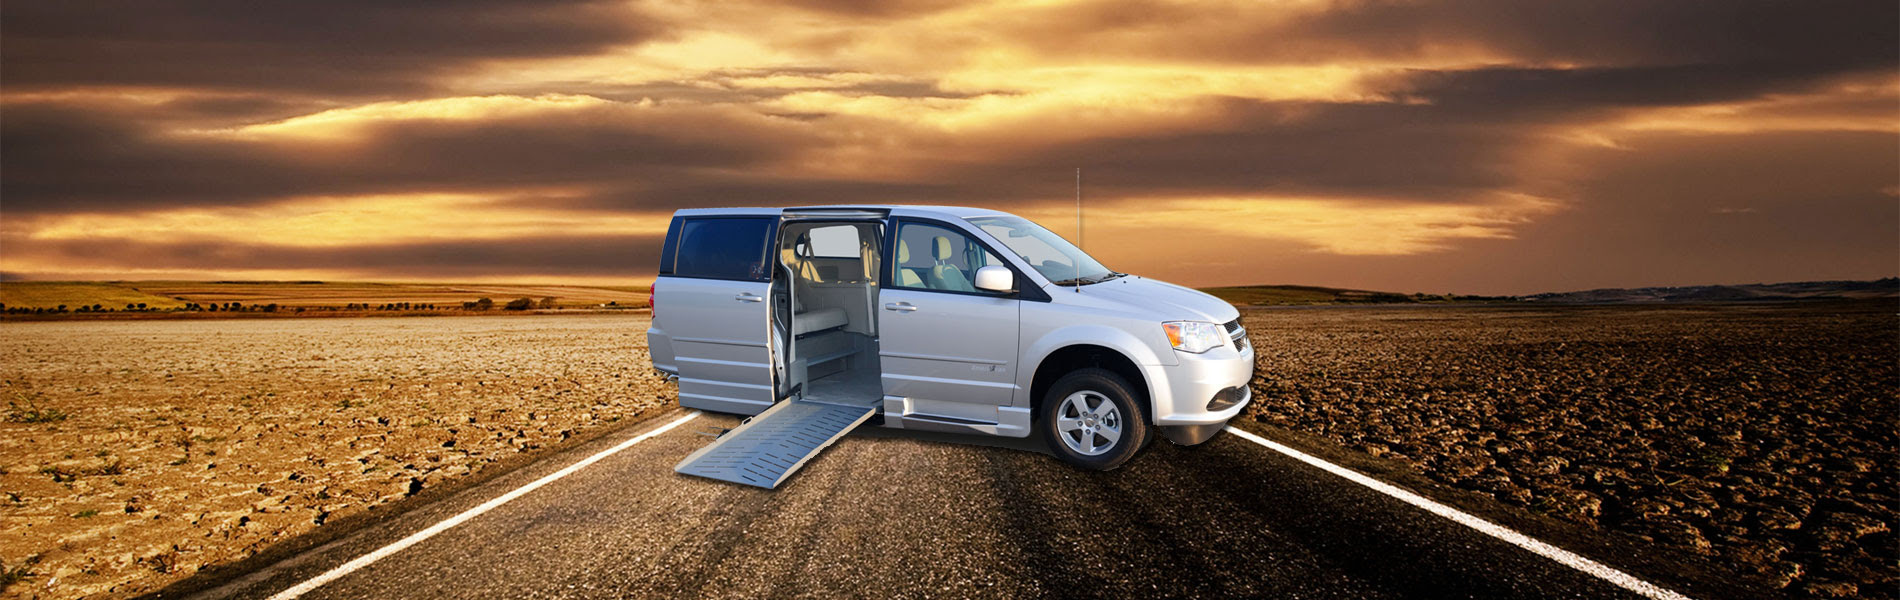 Handicap Vans For Sale 1800308 2503